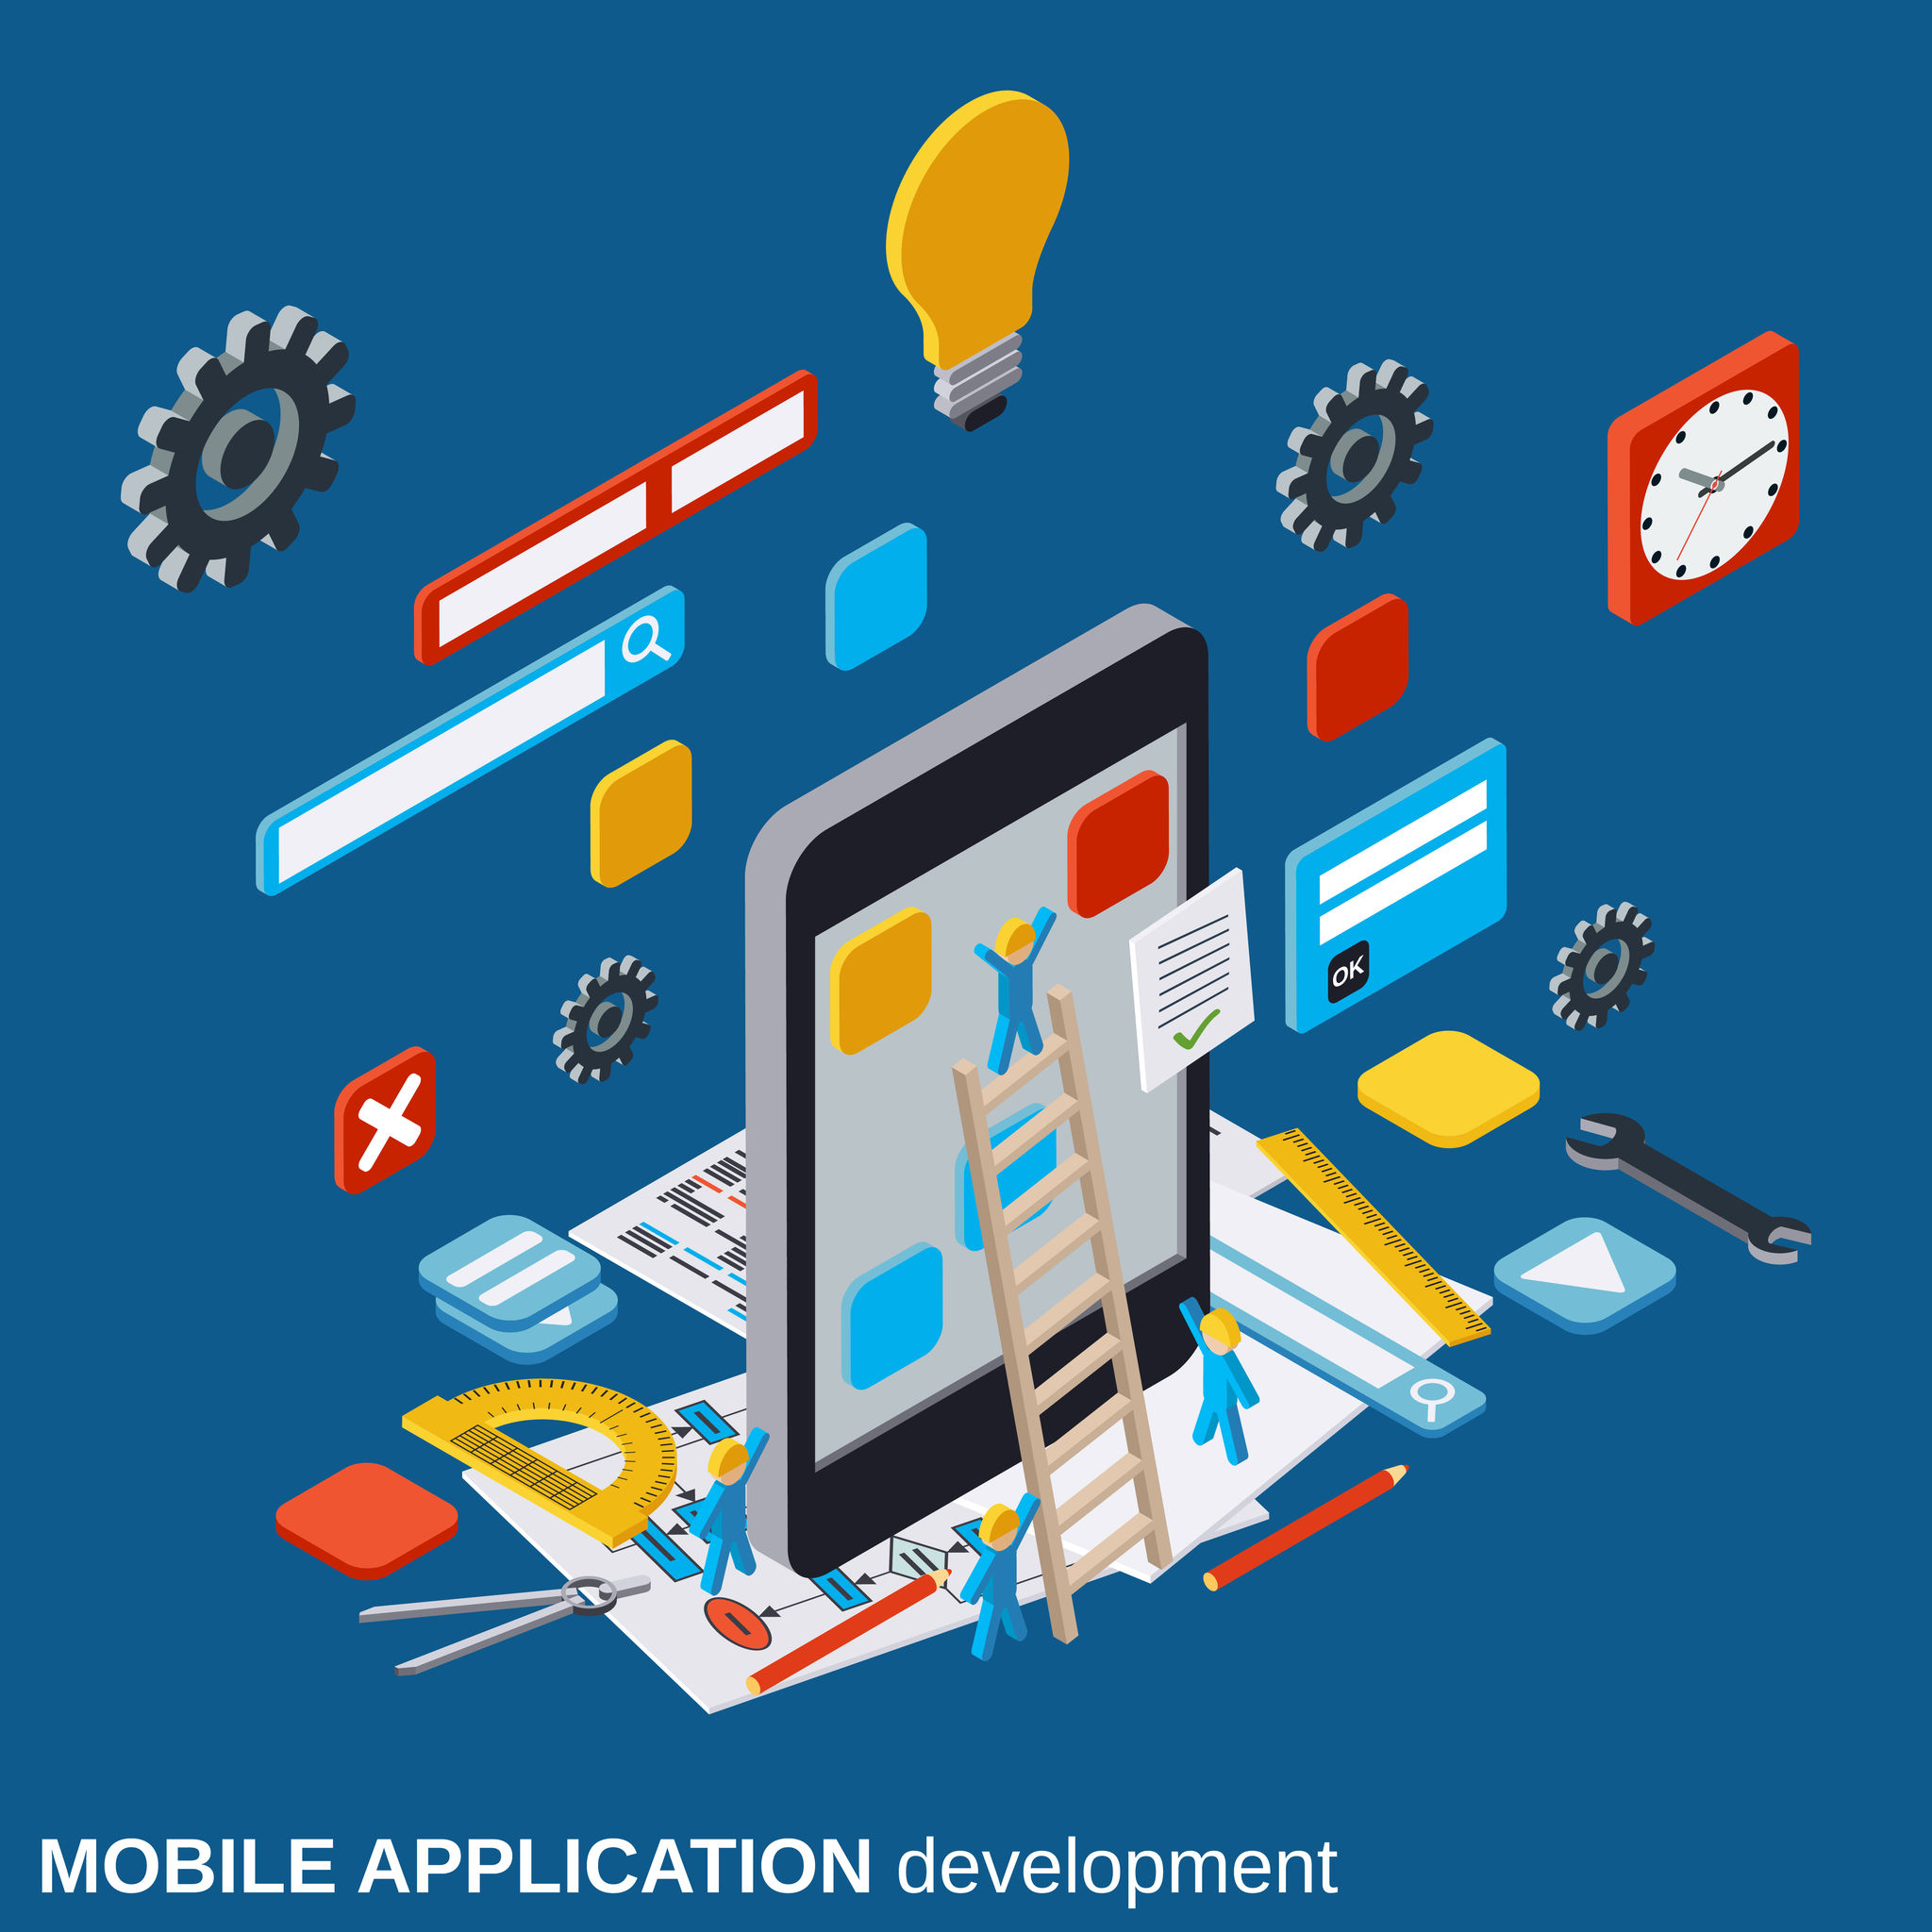 Ex2 Dec Blog 5 - 5 Mobile App Development Mistakes You Need to be Wary of.jpg